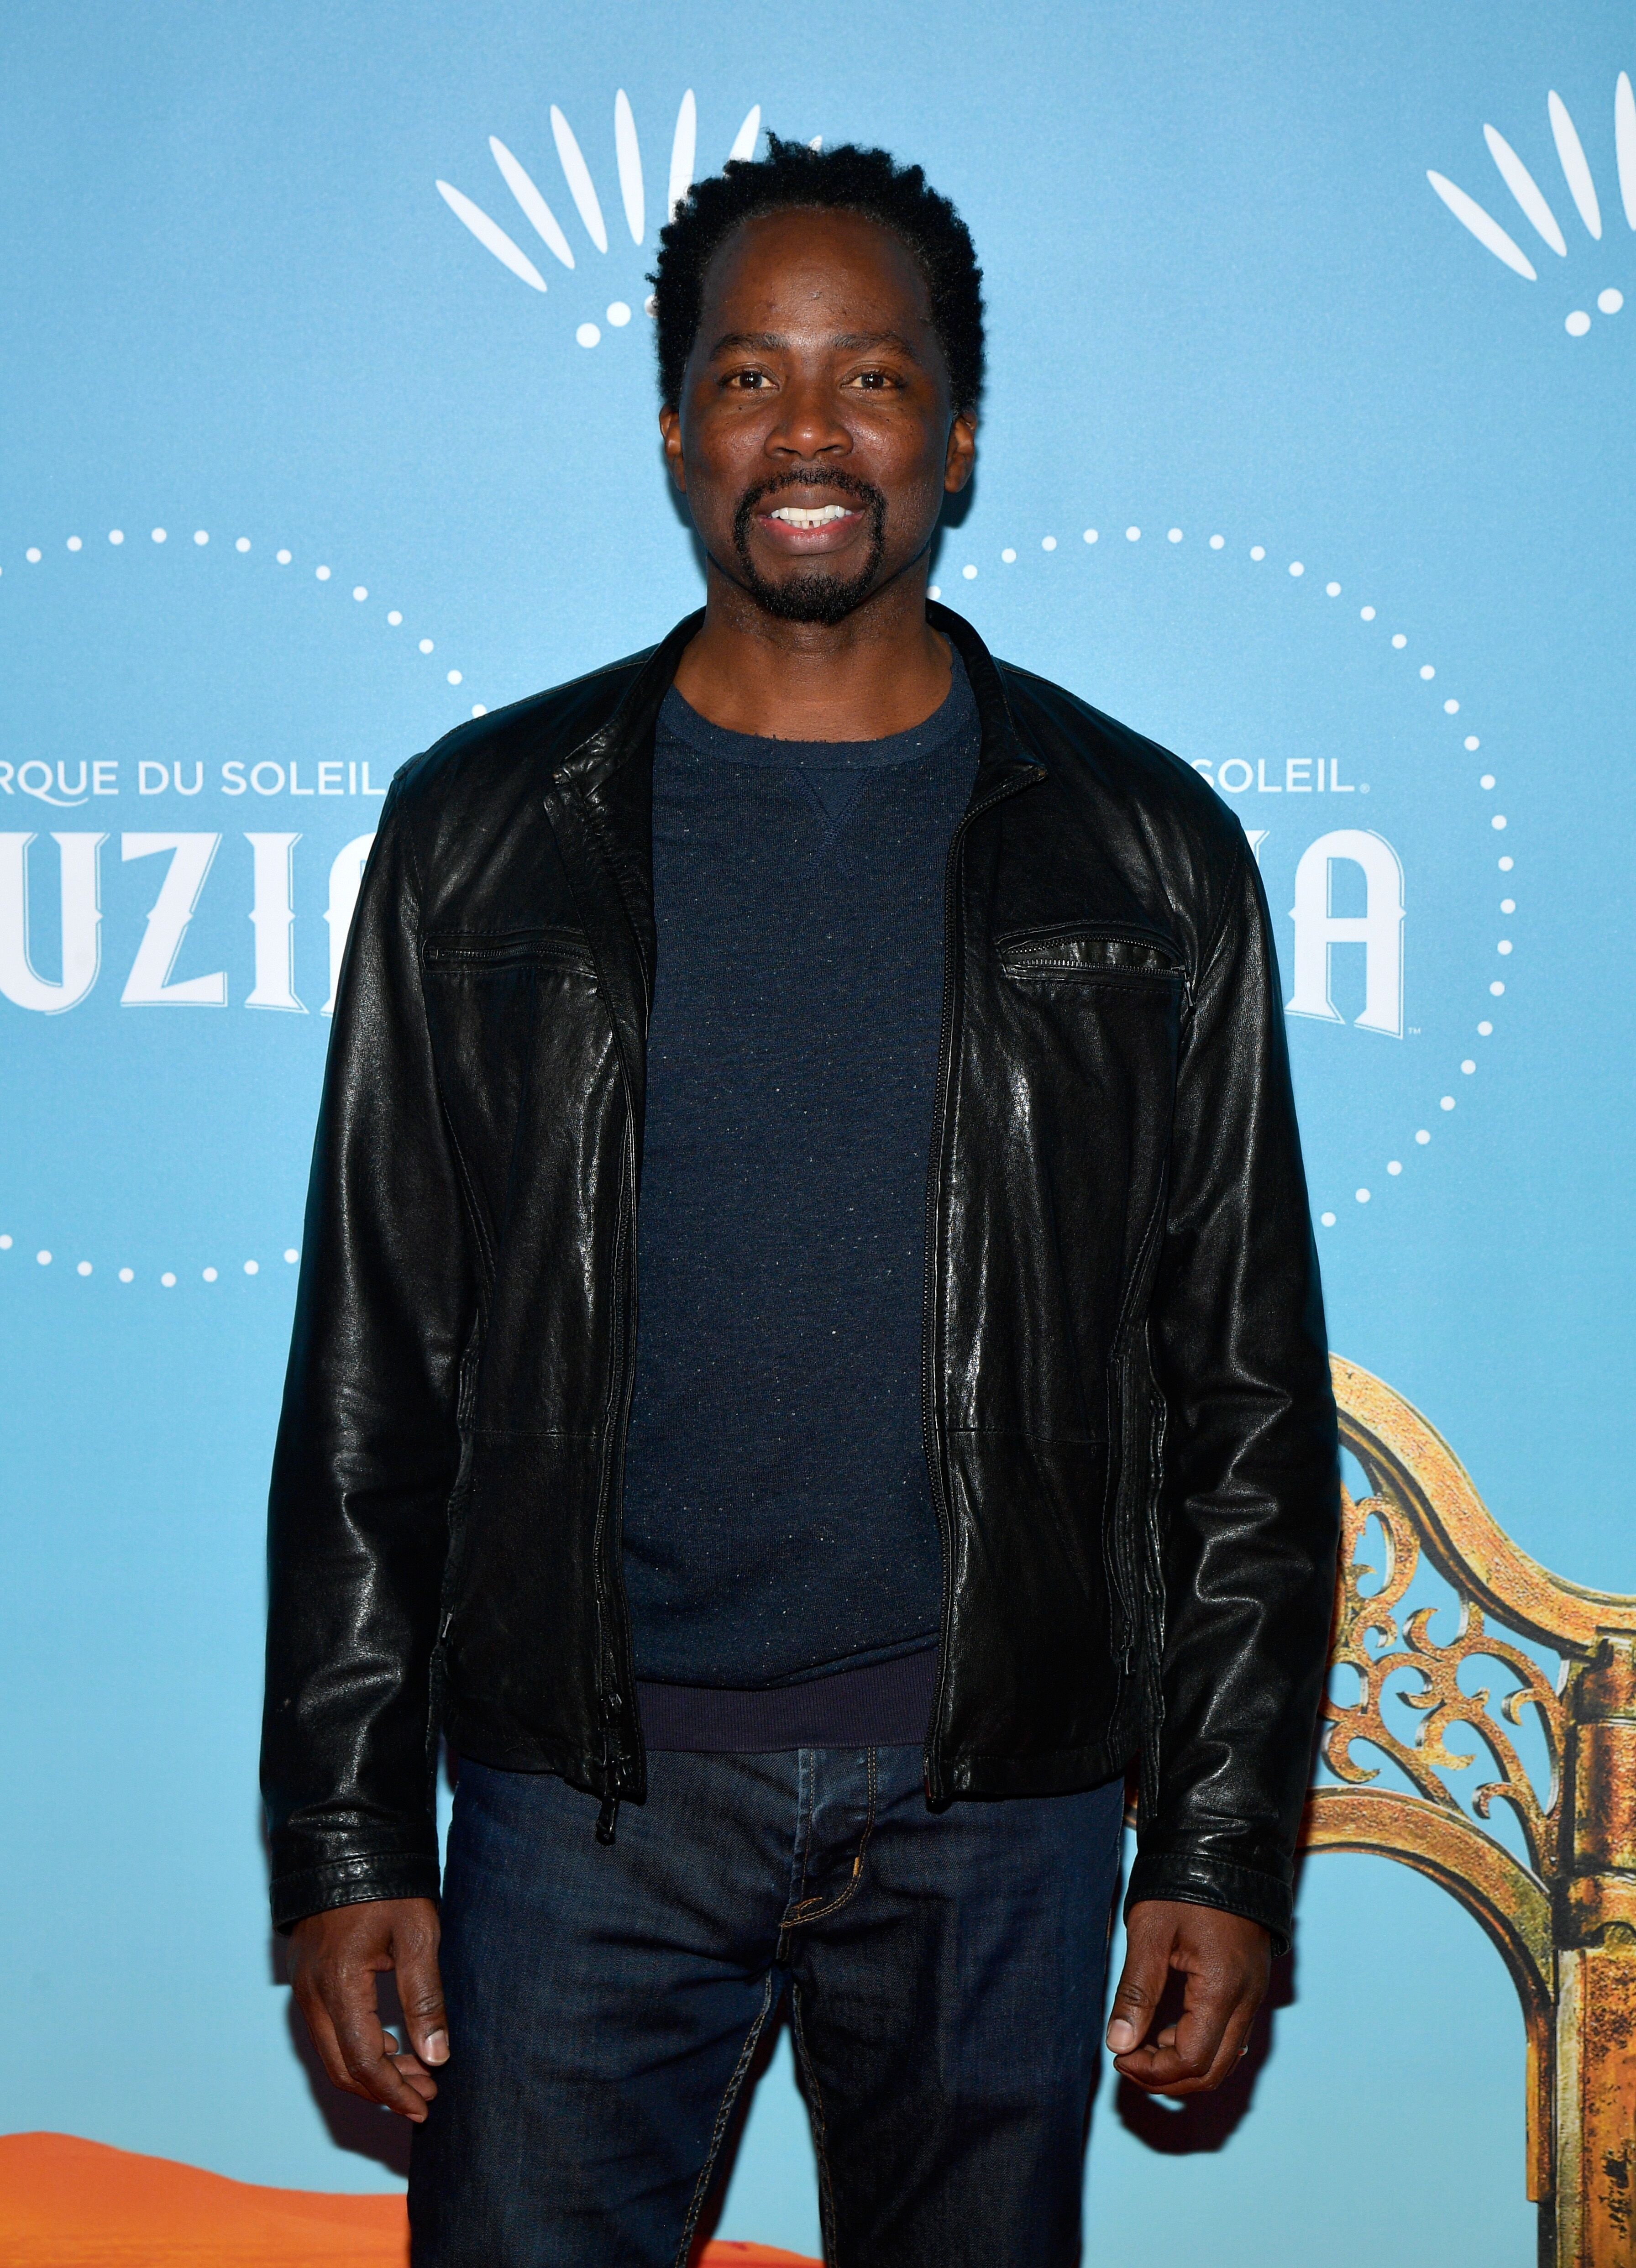 """Harold Perrineau attends Cirque du Soleil's Los Angeles premiere event of """"Luzia"""" at Dodger Stadium on December 12, 2017 in Los Angeles, California. 